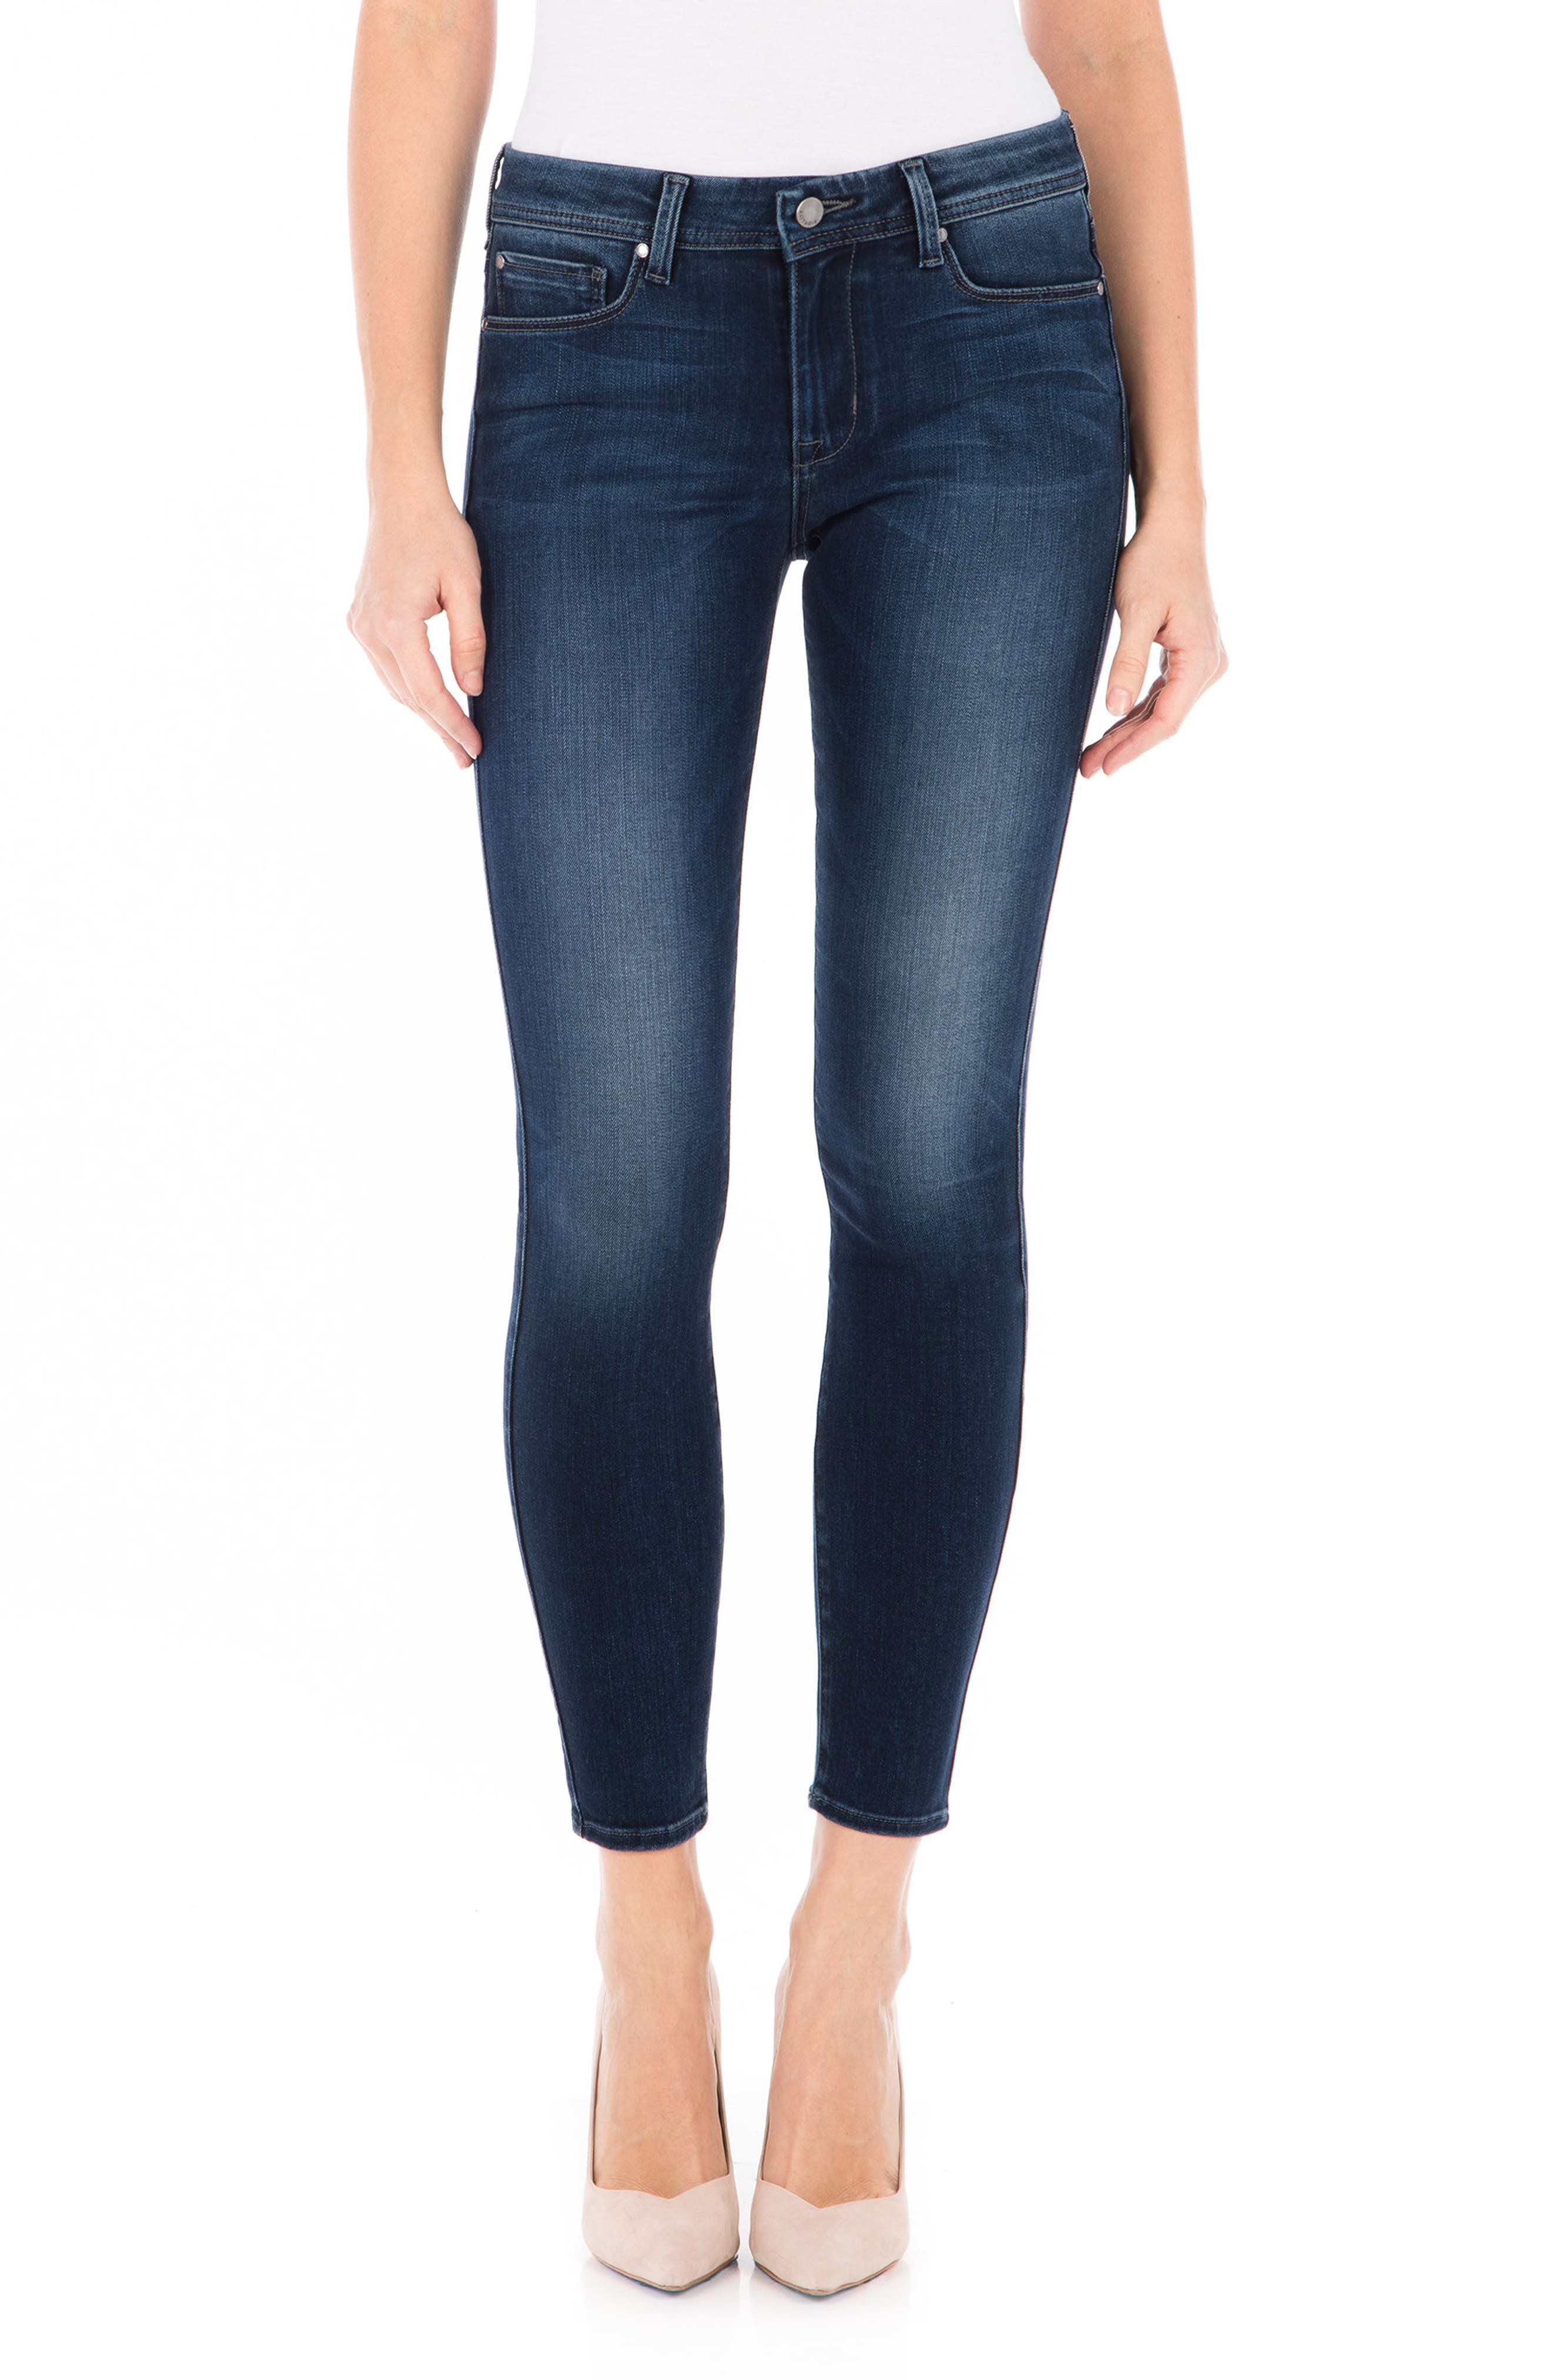 Sola Skinny Jeans,                             Main thumbnail 1, color,                             400